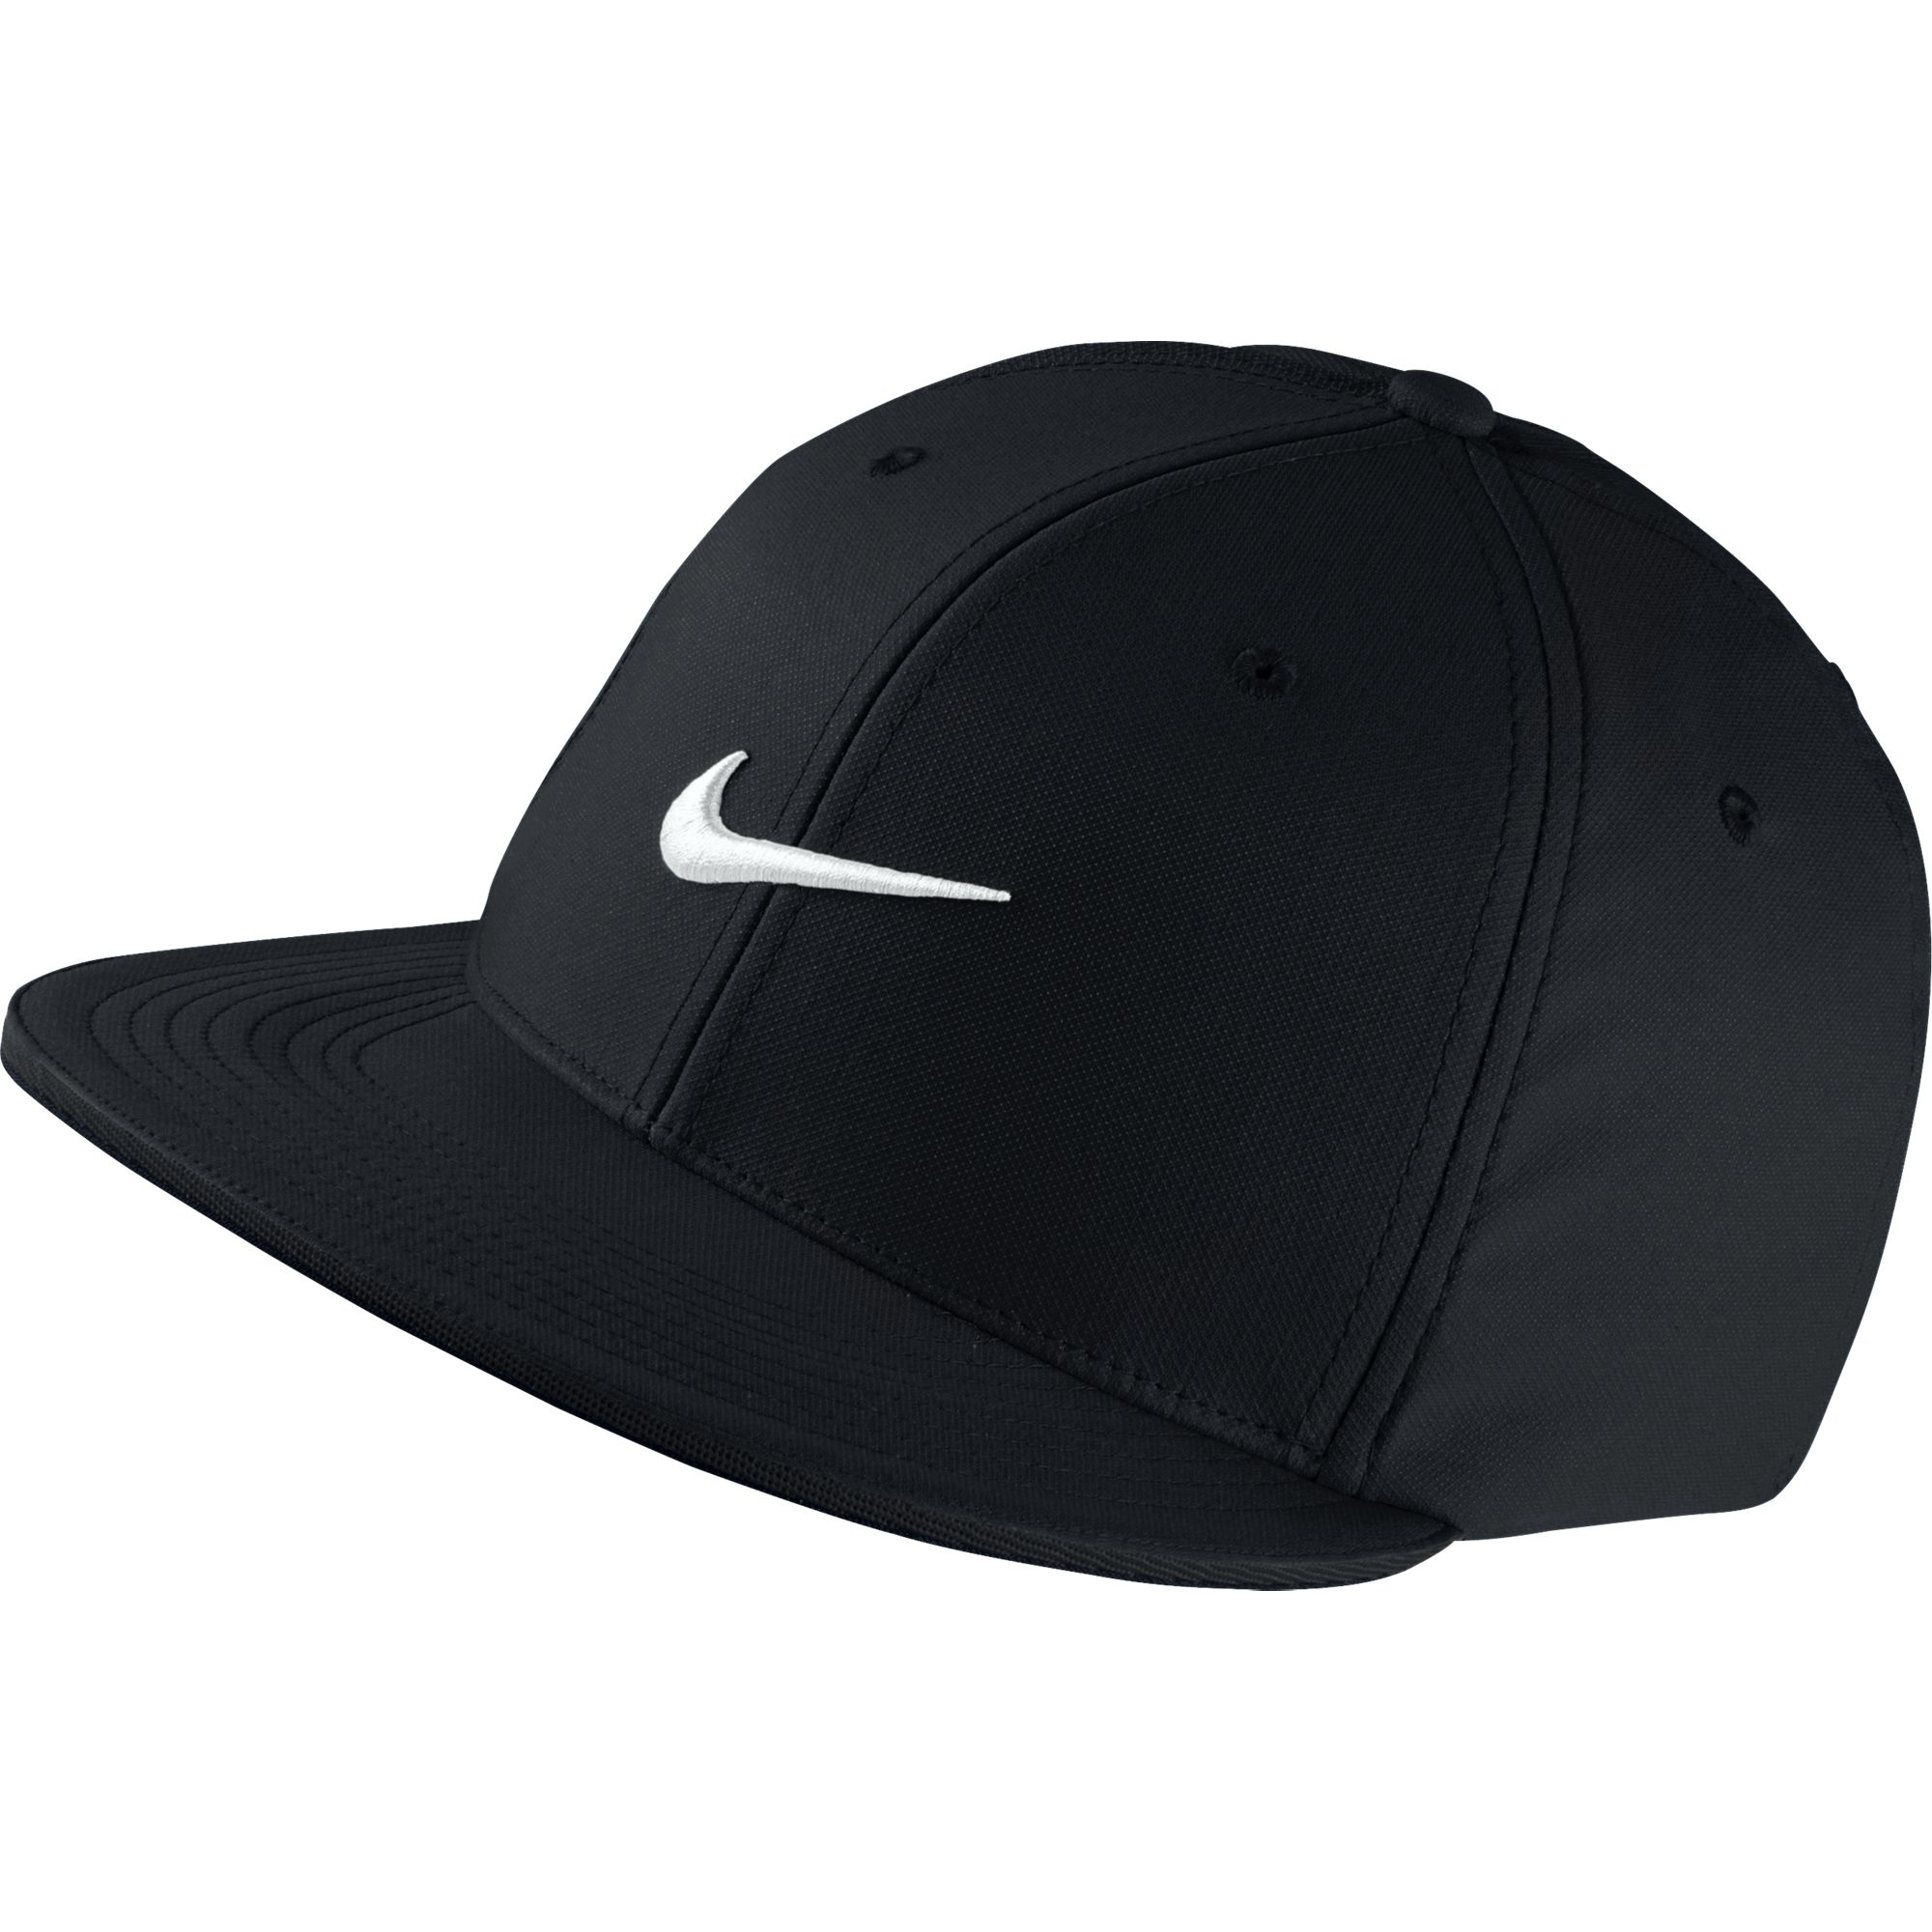 4f129309fd6ba The Nike Golf True Tour Fitted Hat is designed with a stretchy headband and  lightweight fit made with breathable